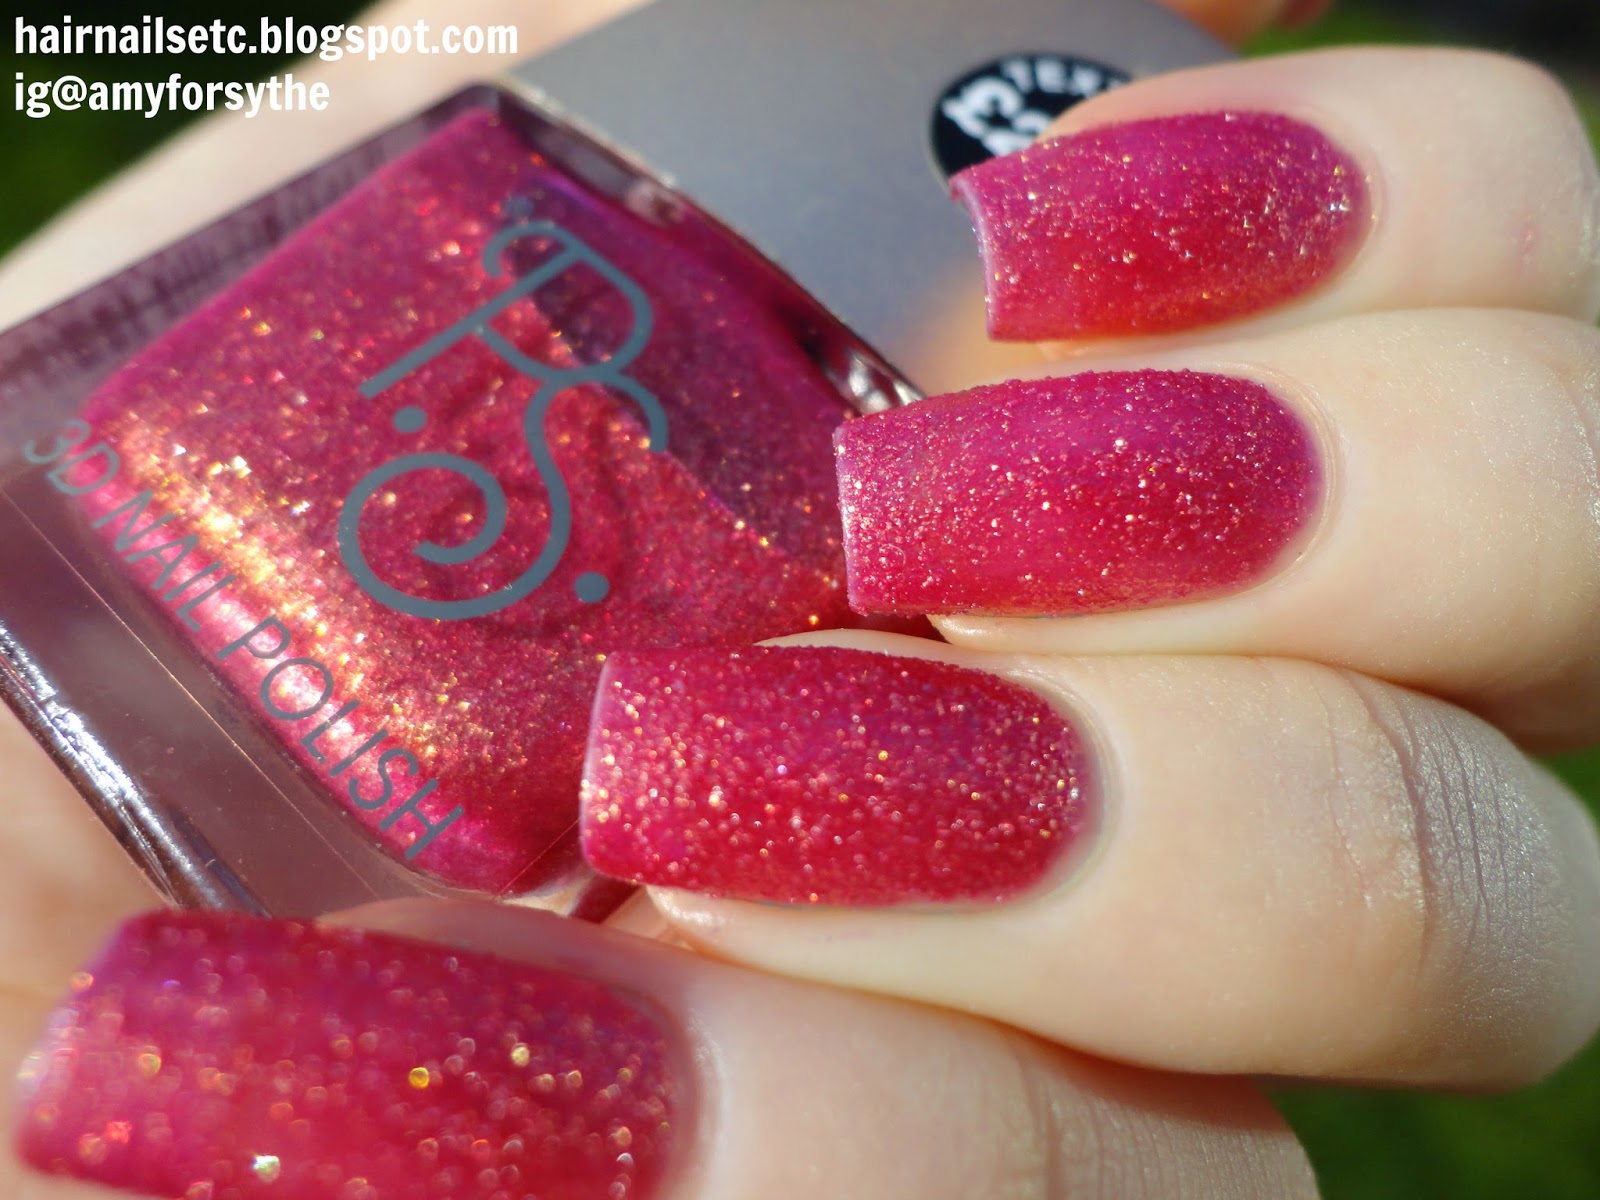 Primark PS 3D Texture Nail Polishes Swatches and Review Red